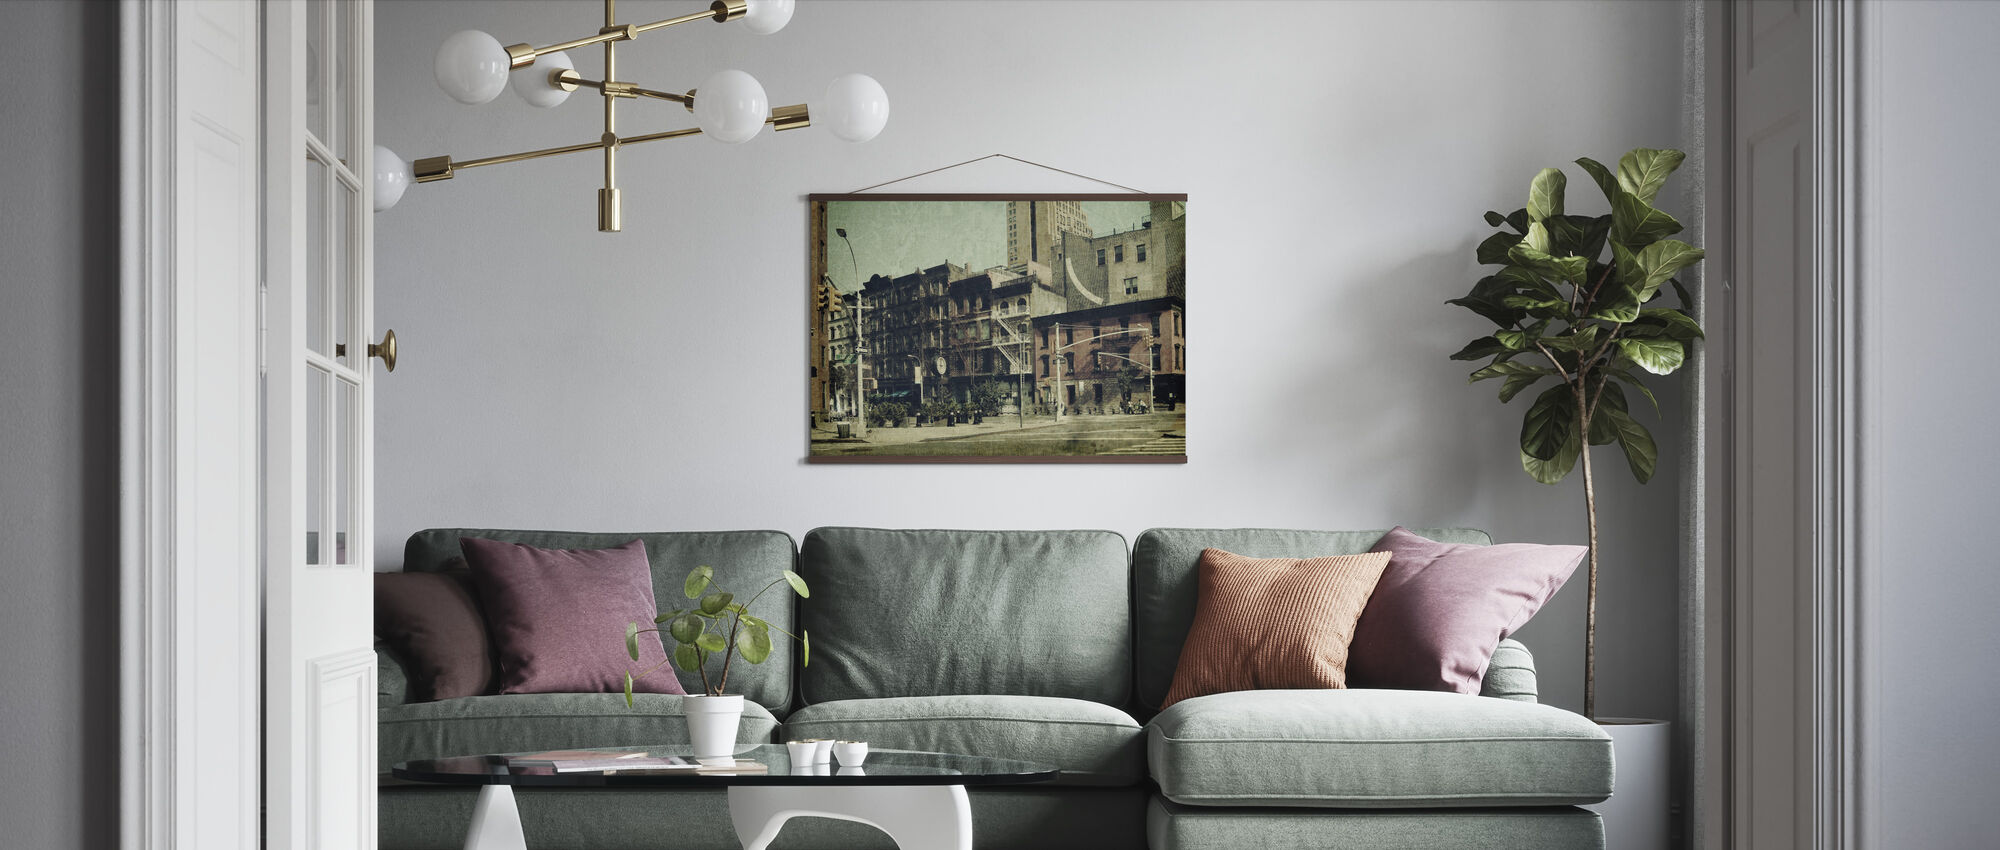 New York City - Sixth Avenue - Poster - Living Room